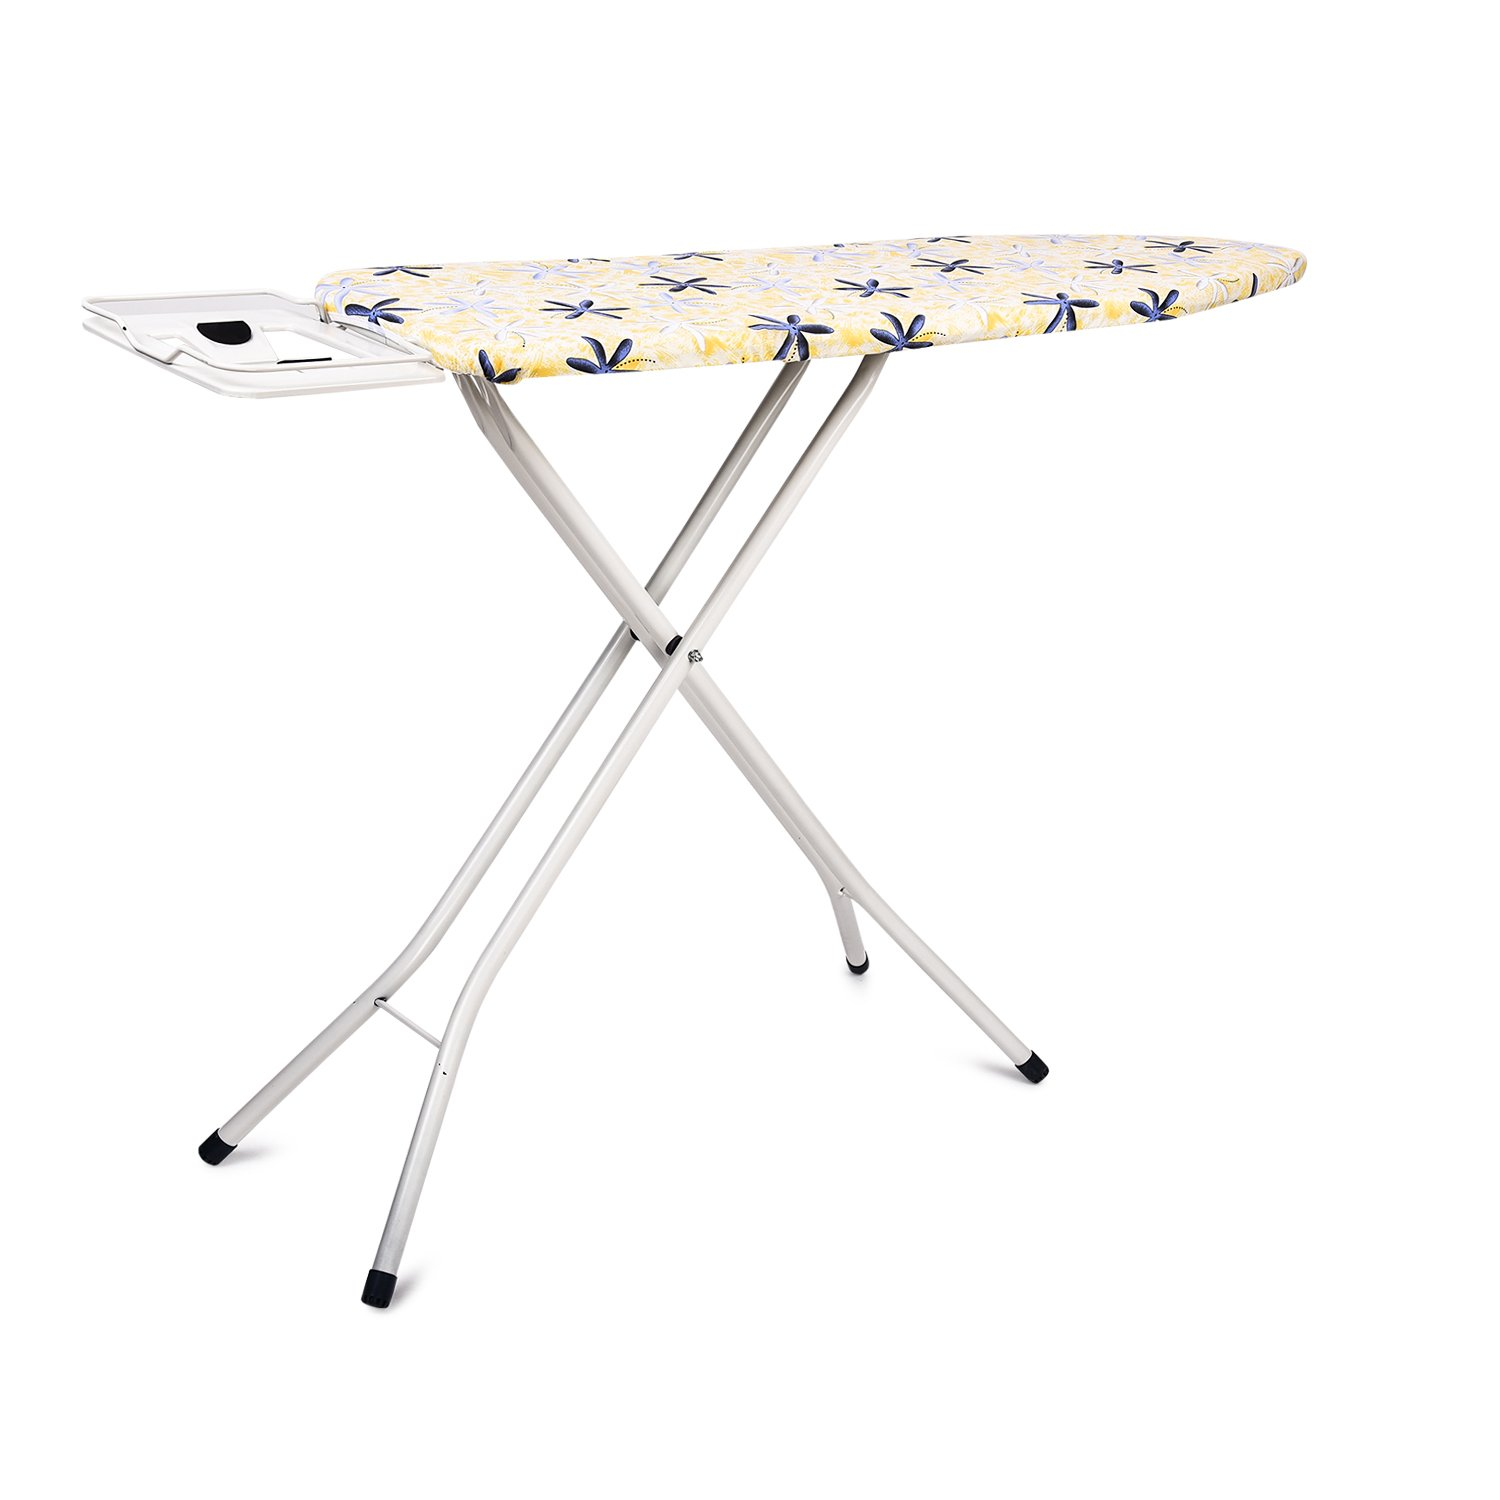 bfe6a1aaccb PAffy Premium Metal Ironing Board Table - Foldable - with Grilled Iron  Holder - White - Lifetime Warranty  Amazon.in  Home   Kitchen